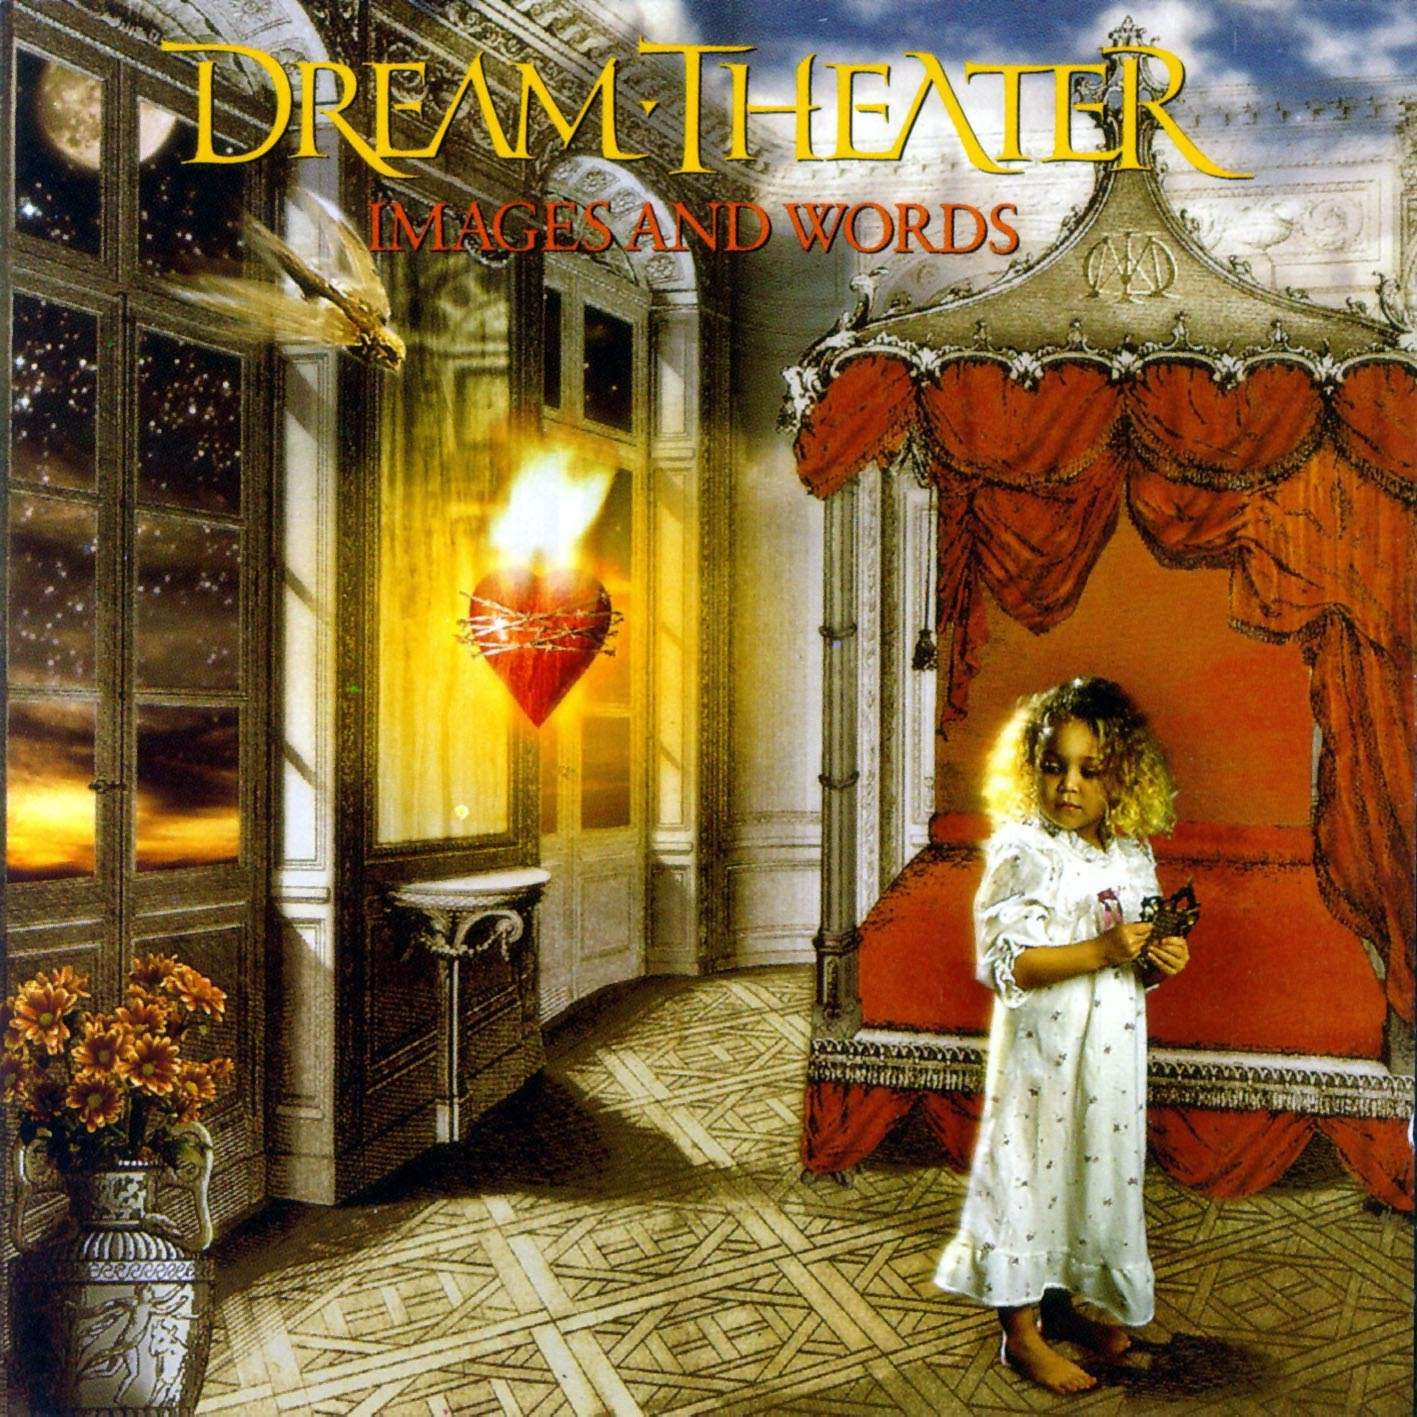 Dream Theater - As I Am with lyrics - YouTube